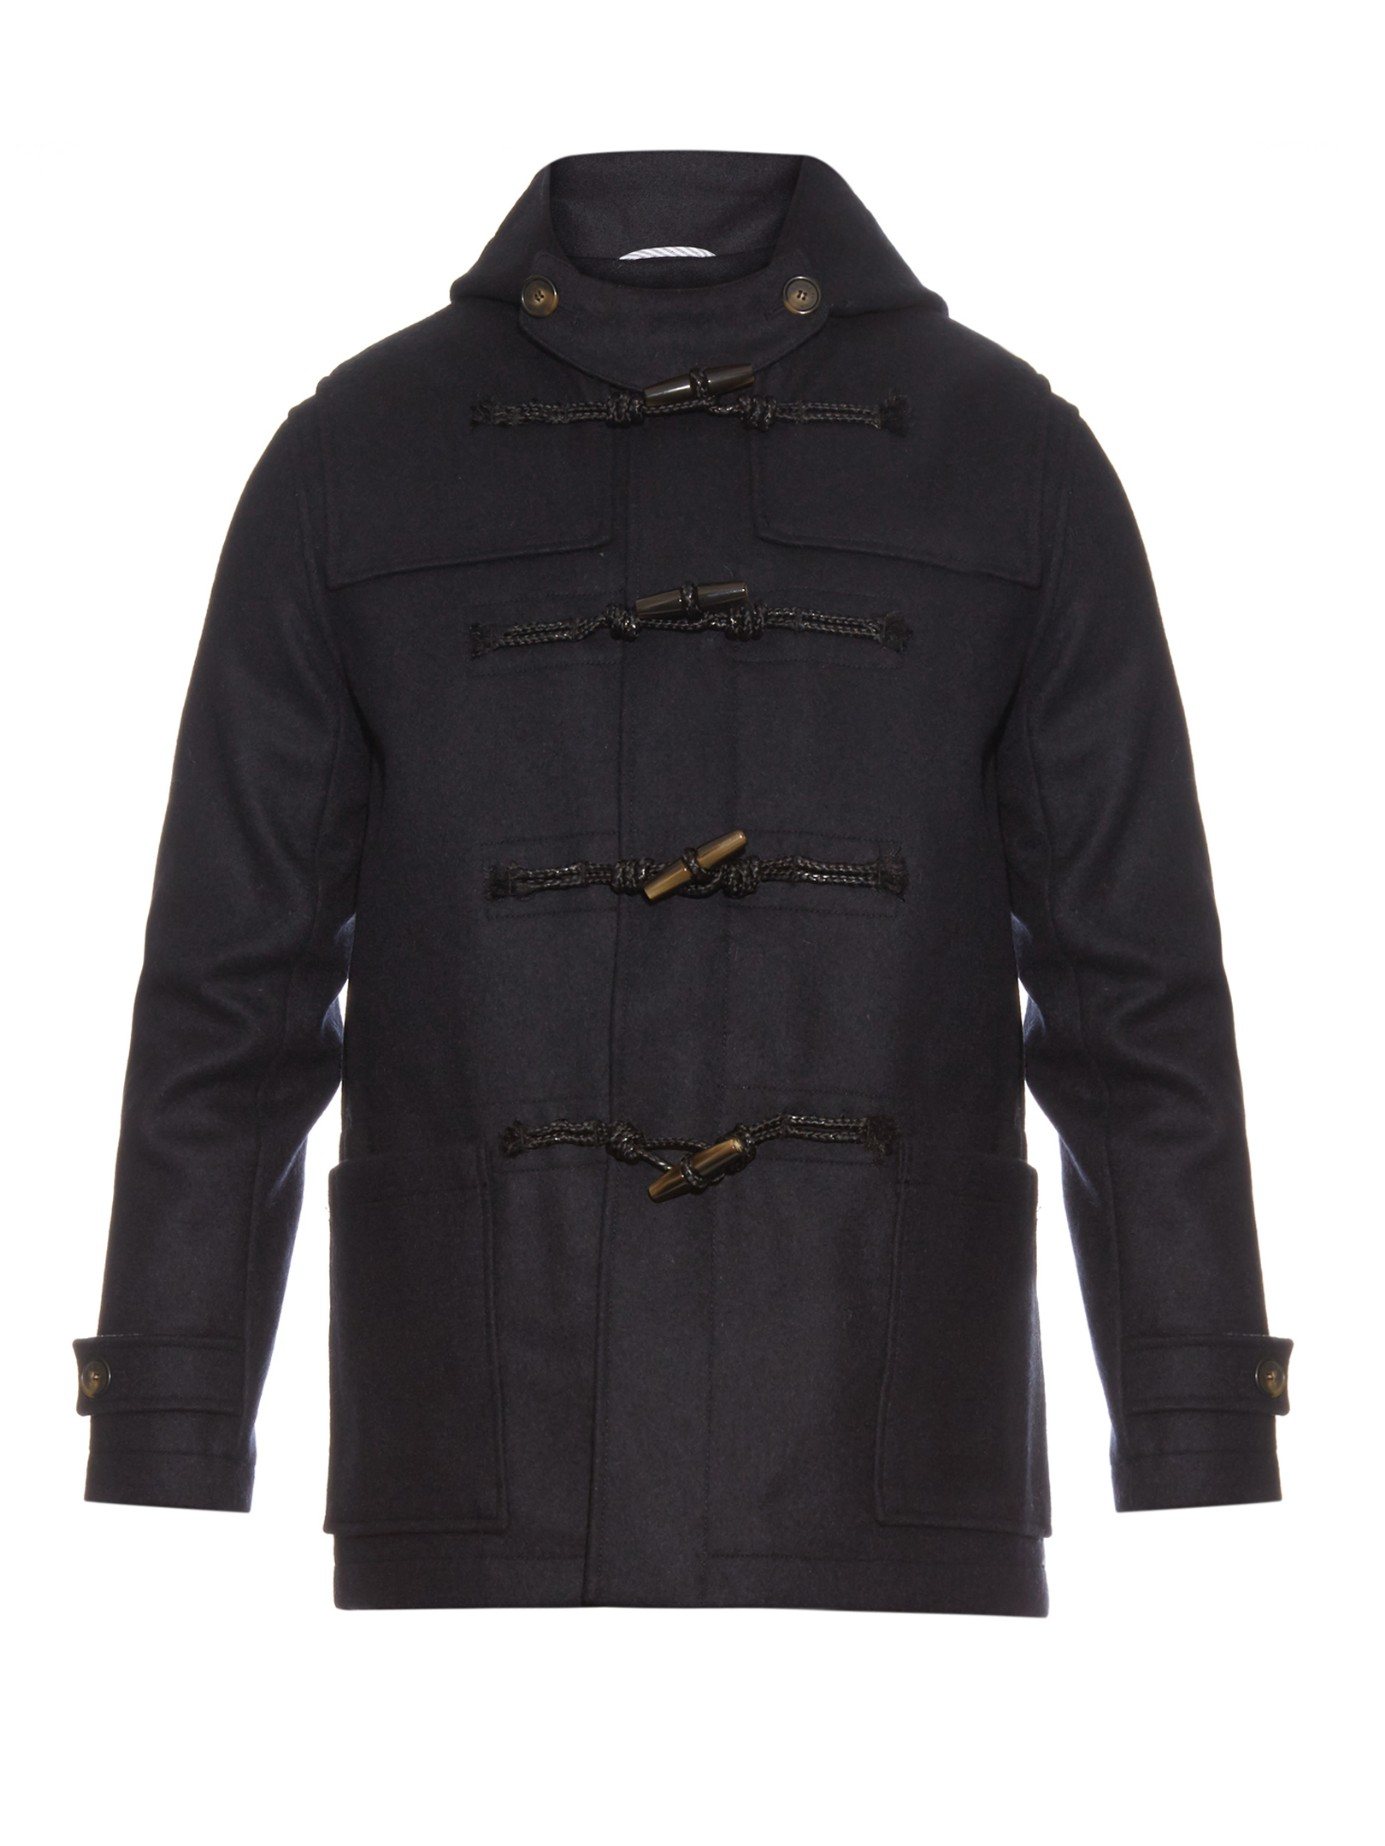 Maison kitsuné Wool Duffle Coat in Blue for Men | Lyst